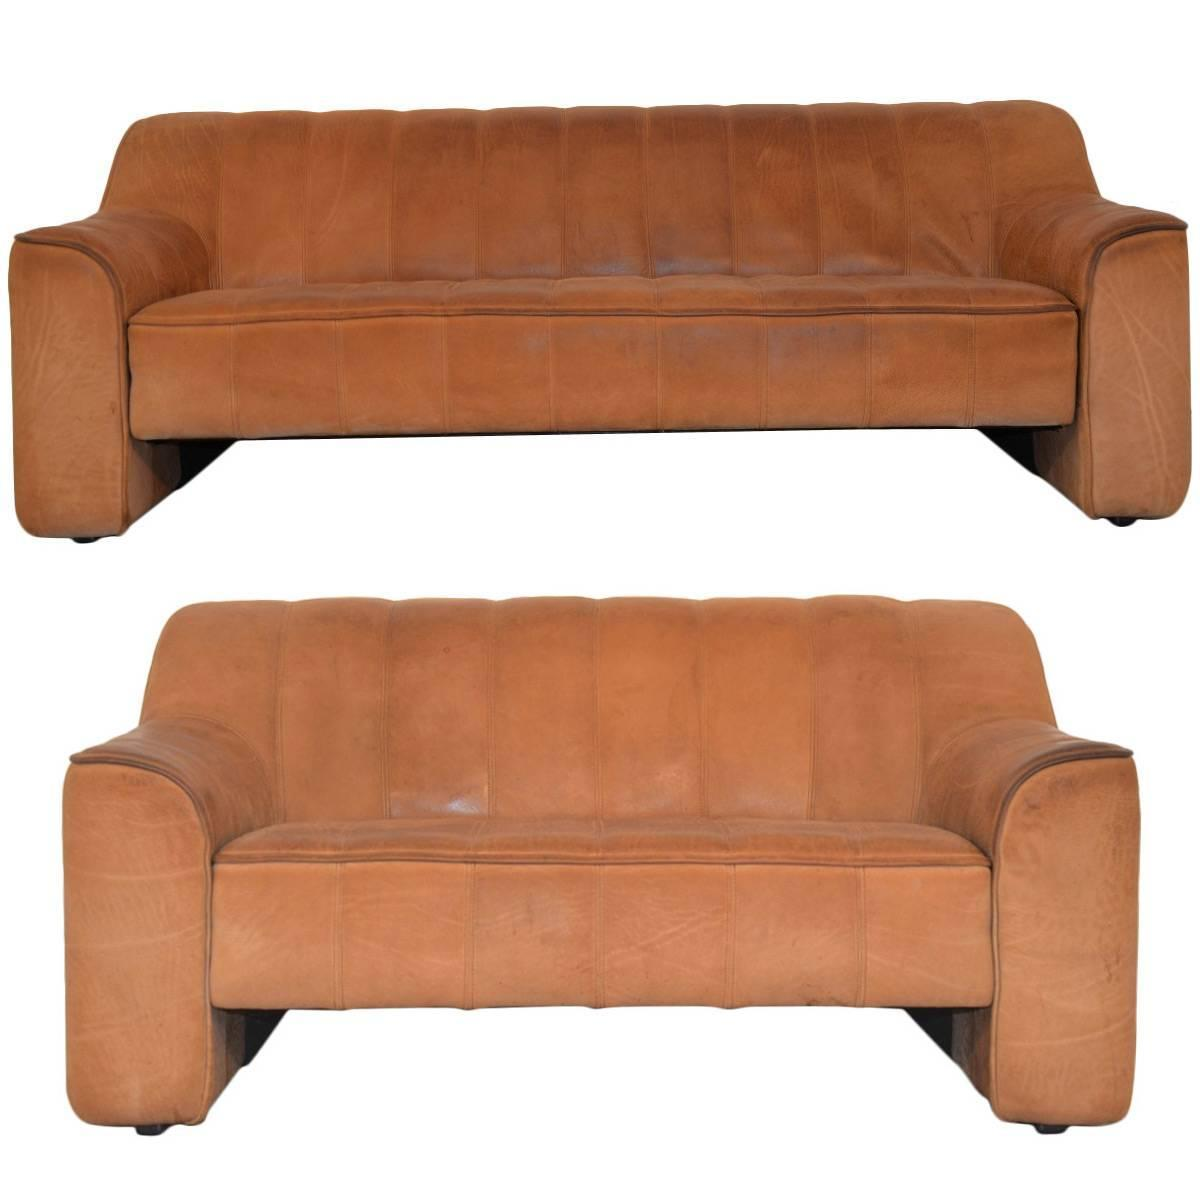 Matching Pair Of Vintage De Sede Ds 44 Sofa And Loveseat